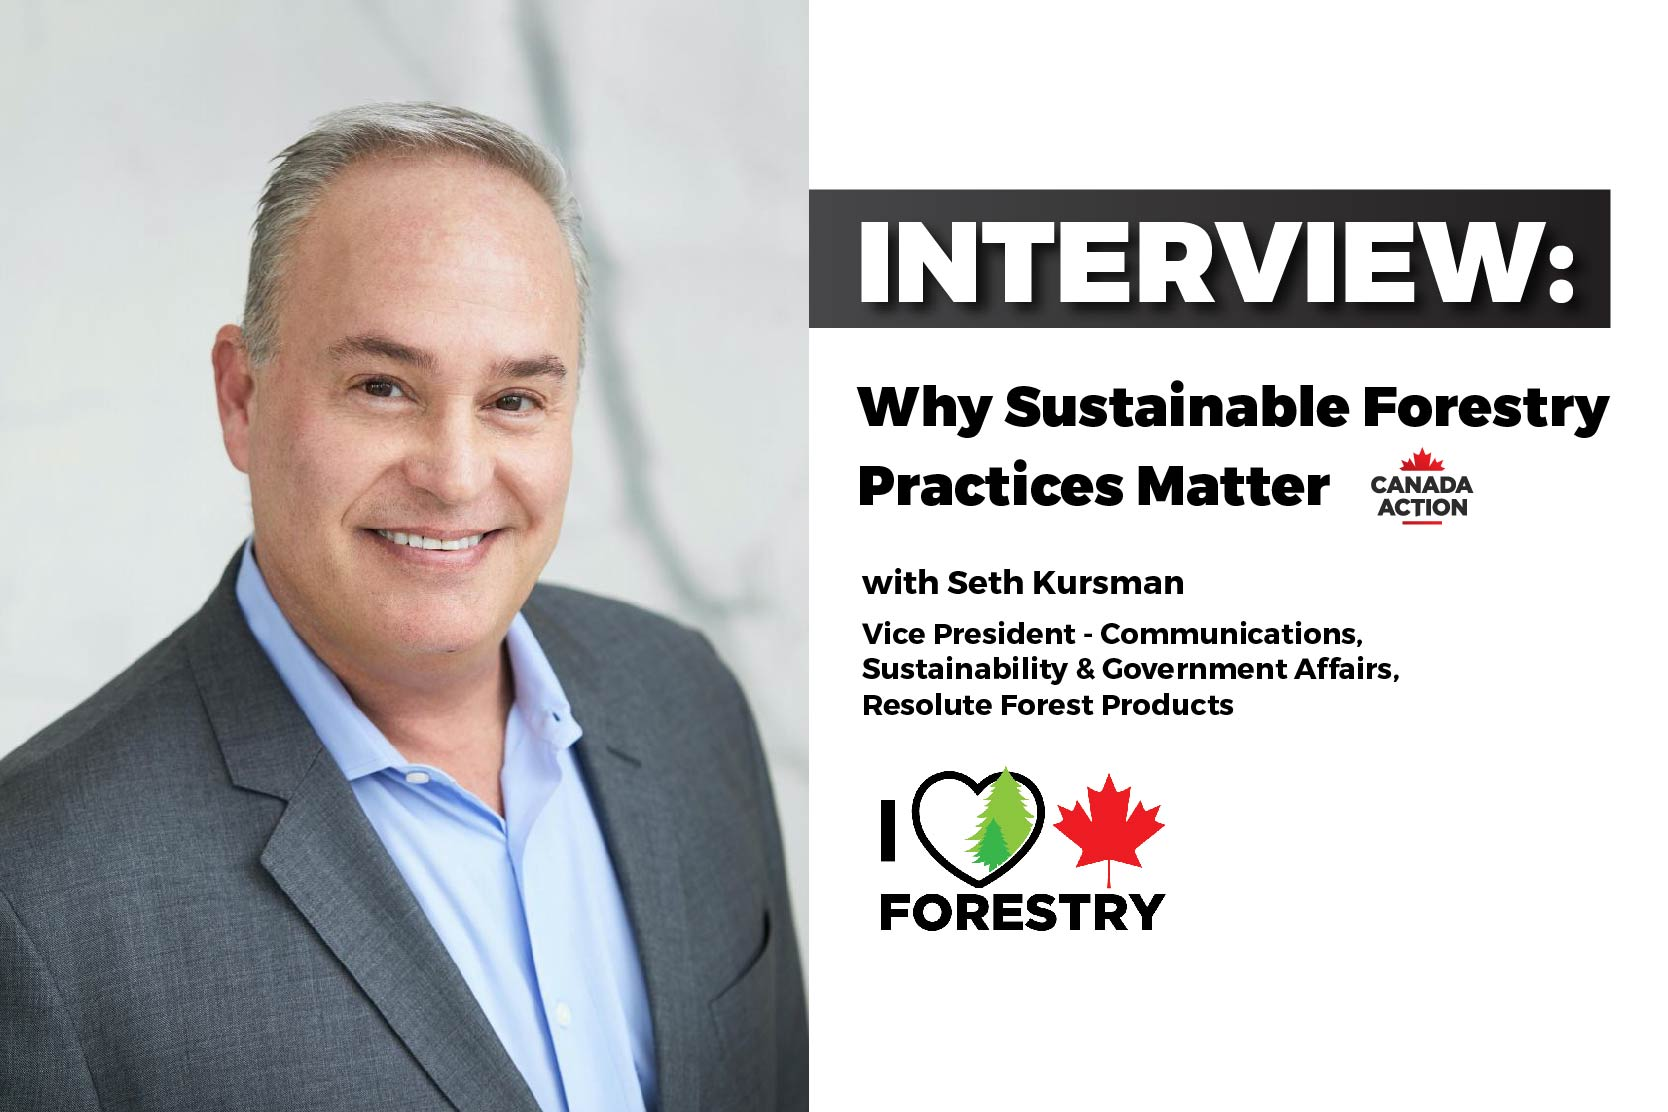 Image: Why Sustainable Forestry Practices Matter: INTERVIEW